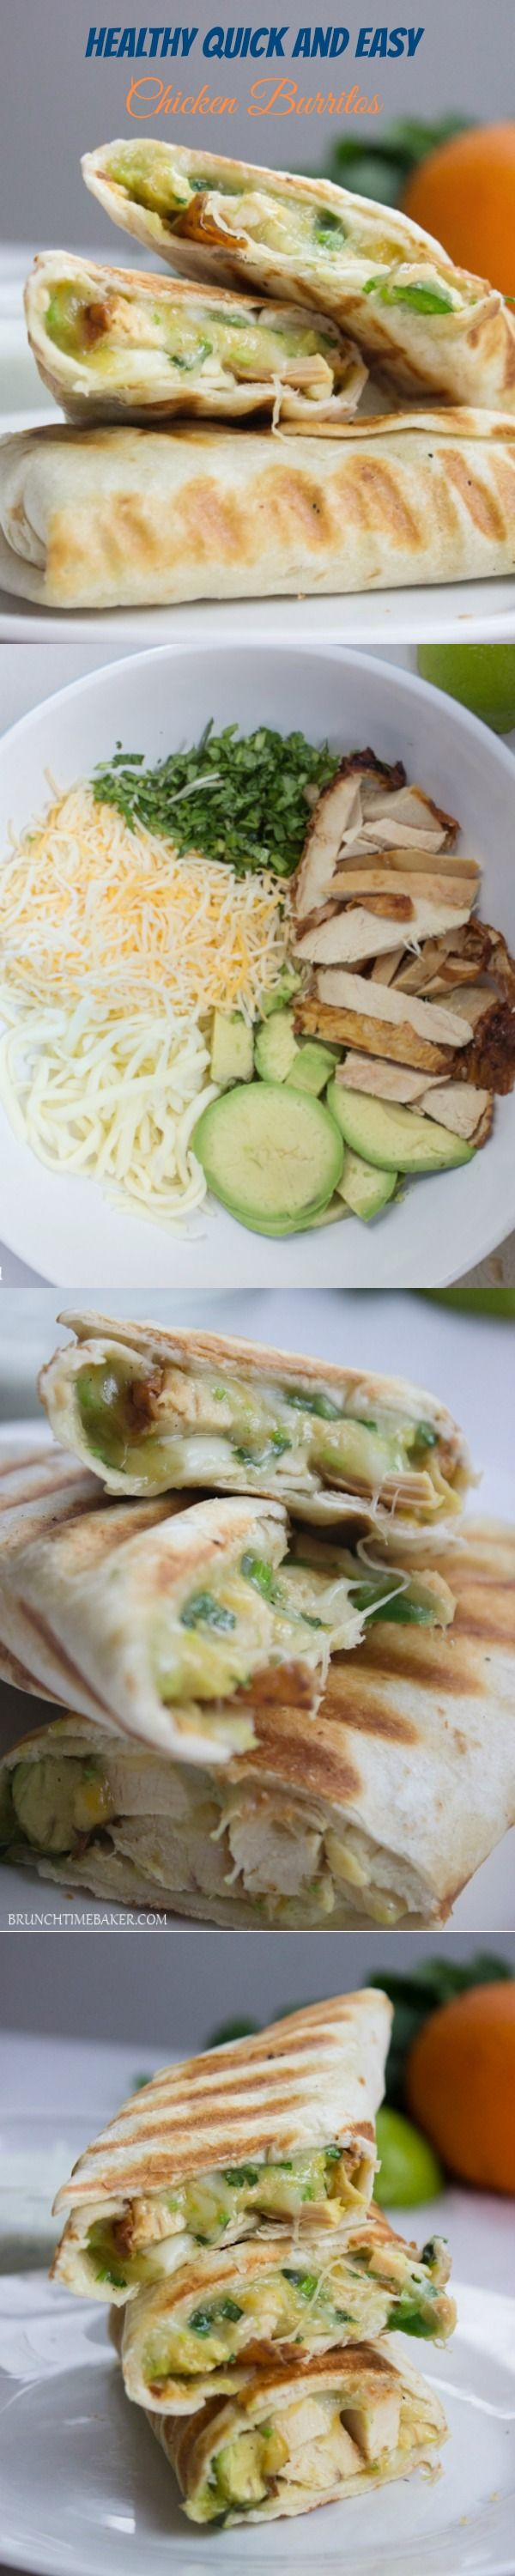 where can i get t shirts printed cheap Quick and Easy Chicken Burritos  Recipe